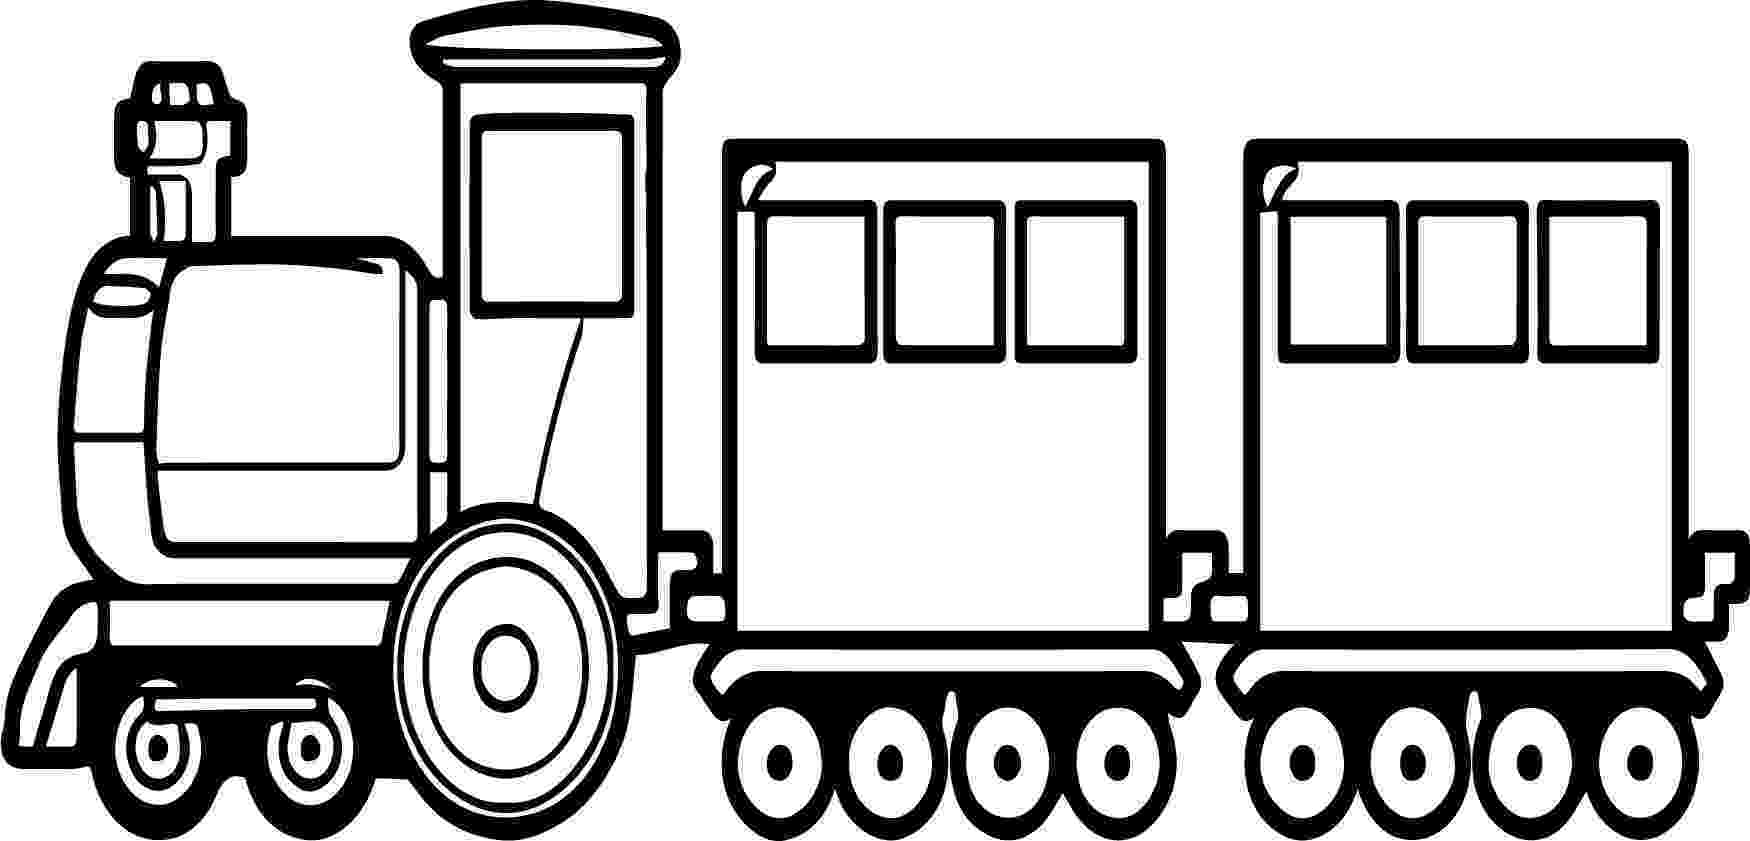 images of train for colouring train coloring pages free download on clipartmag train images for of colouring